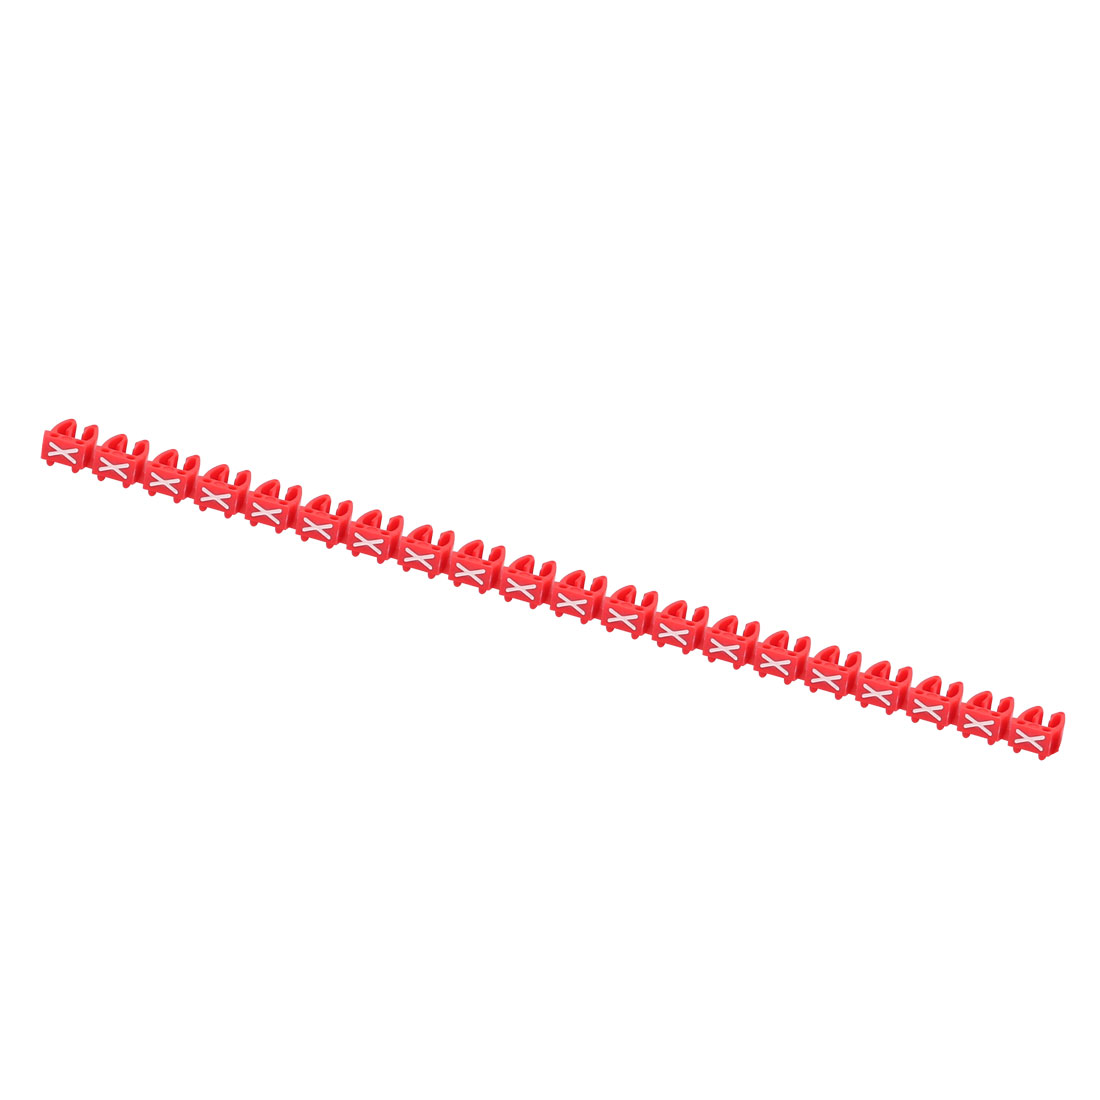 20 Pcs Letters X Network Cable Labels Markers Red for 4.0-6.0mm Dia Cable